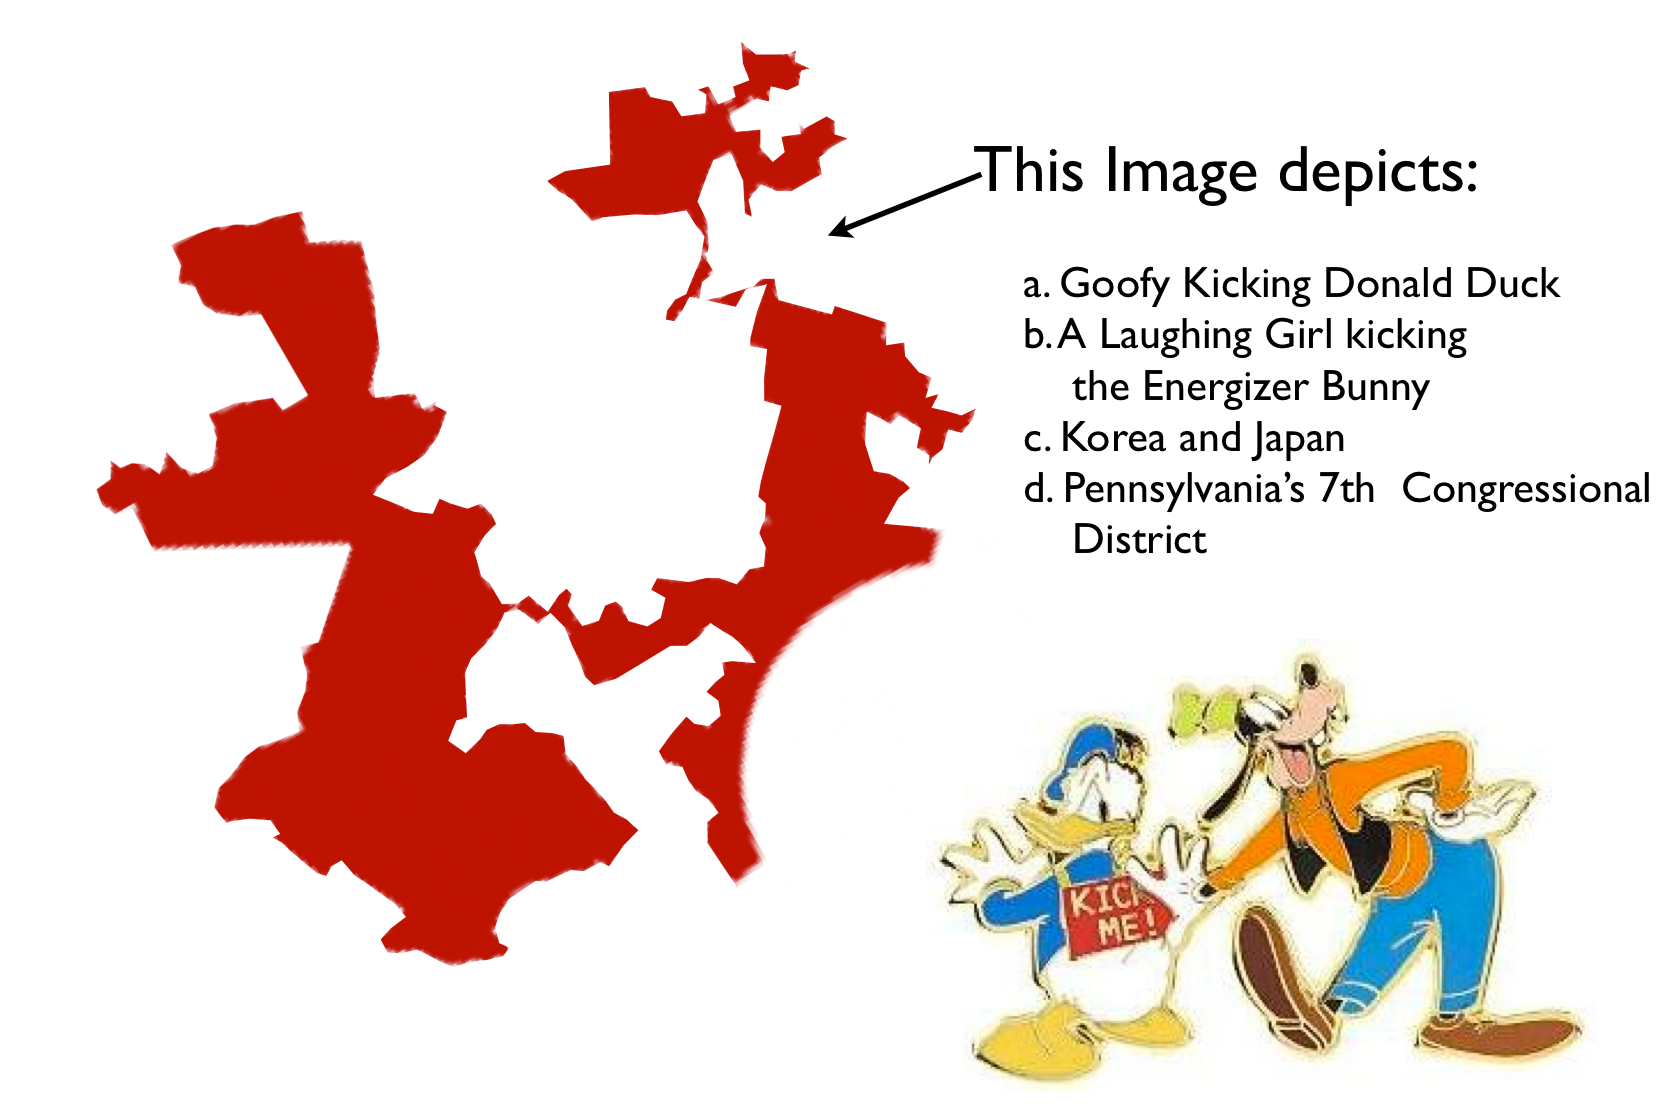 Goofy-Kicking-Donald-Duck.png